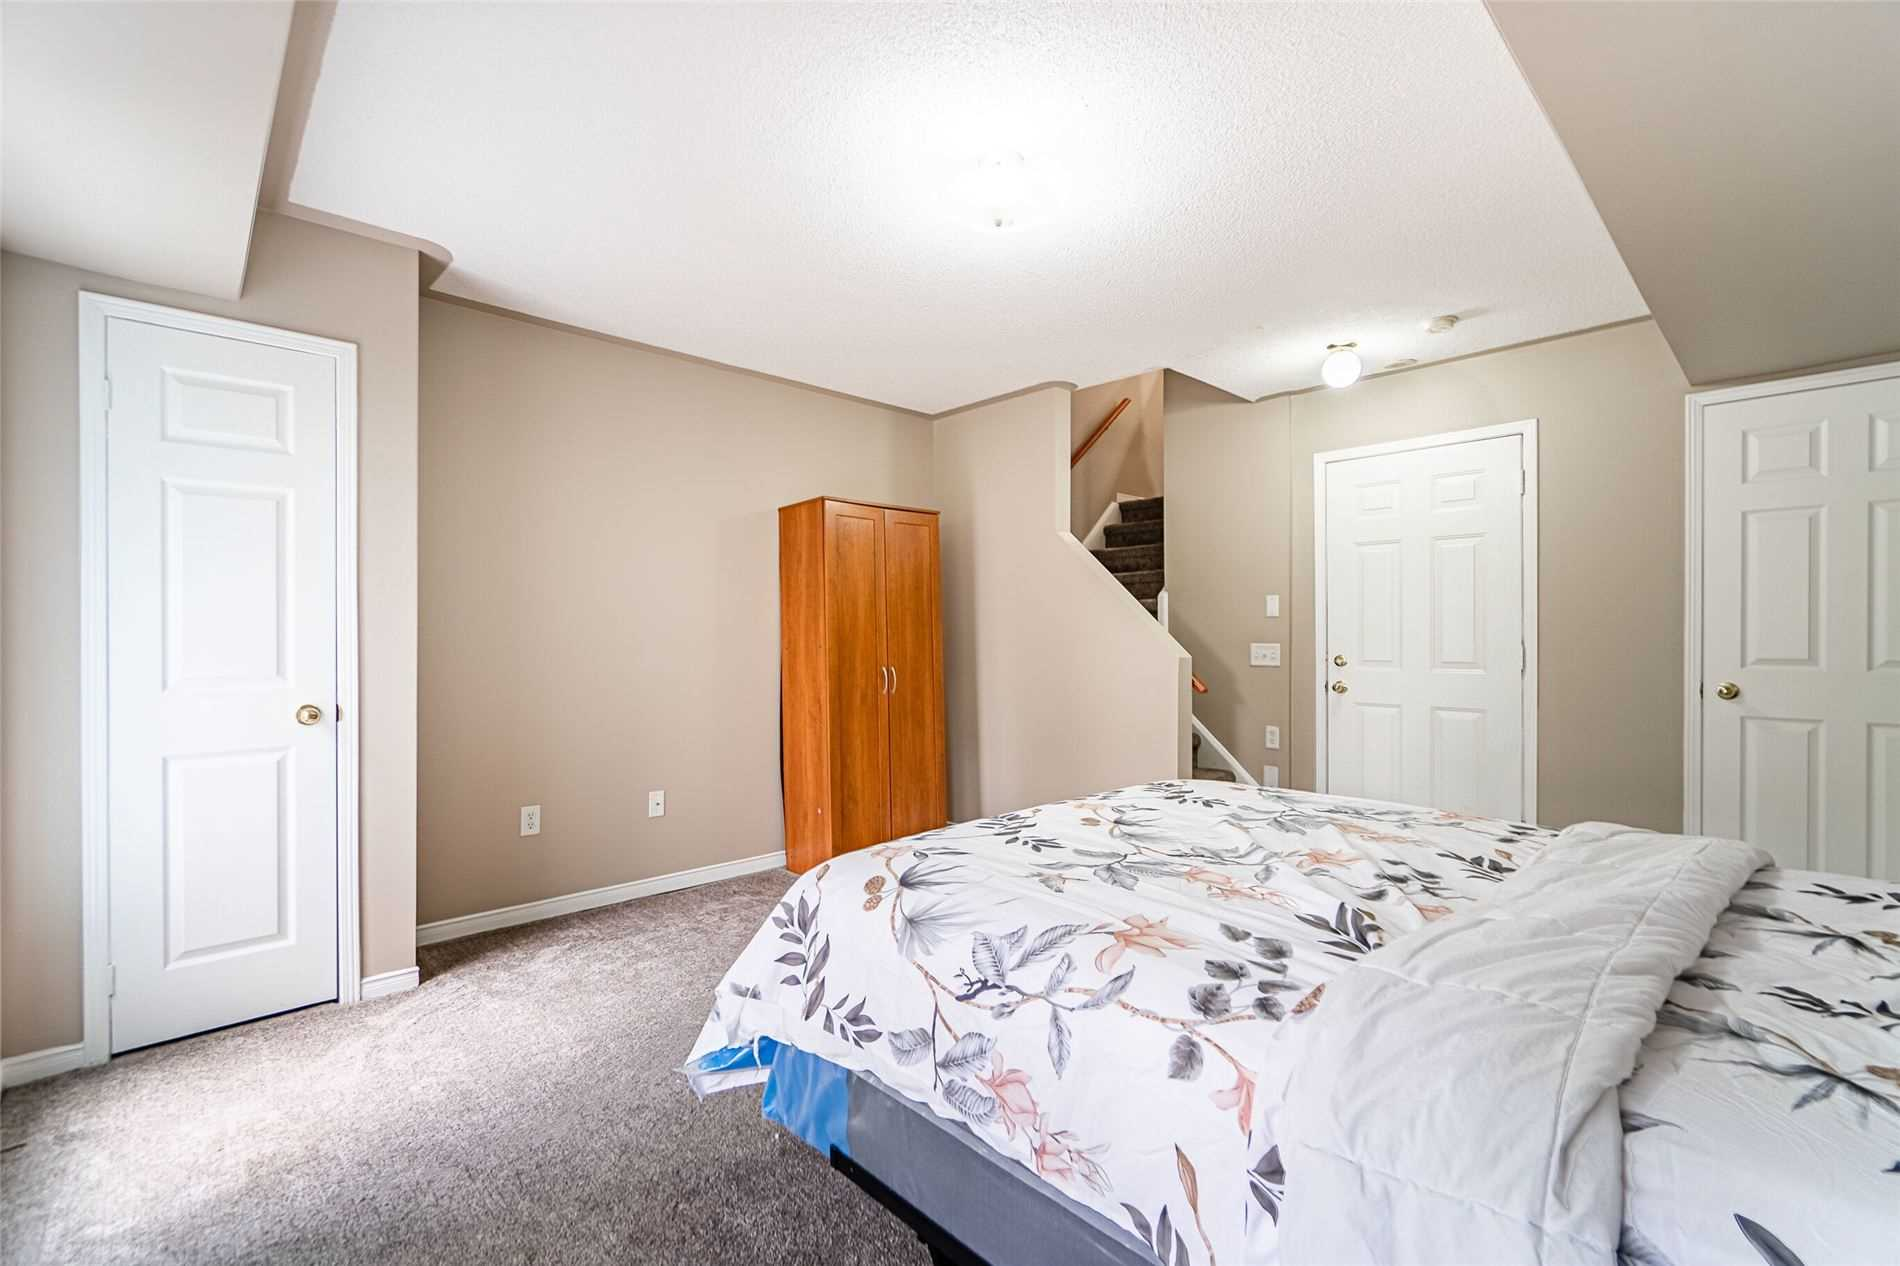 50 Strathaven Dr, Mississauga, Ontario L5R4E7, 3 Bedrooms Bedrooms, 8 Rooms Rooms,3 BathroomsBathrooms,Condo Townhouse,For Sale,Strathaven,W5338152